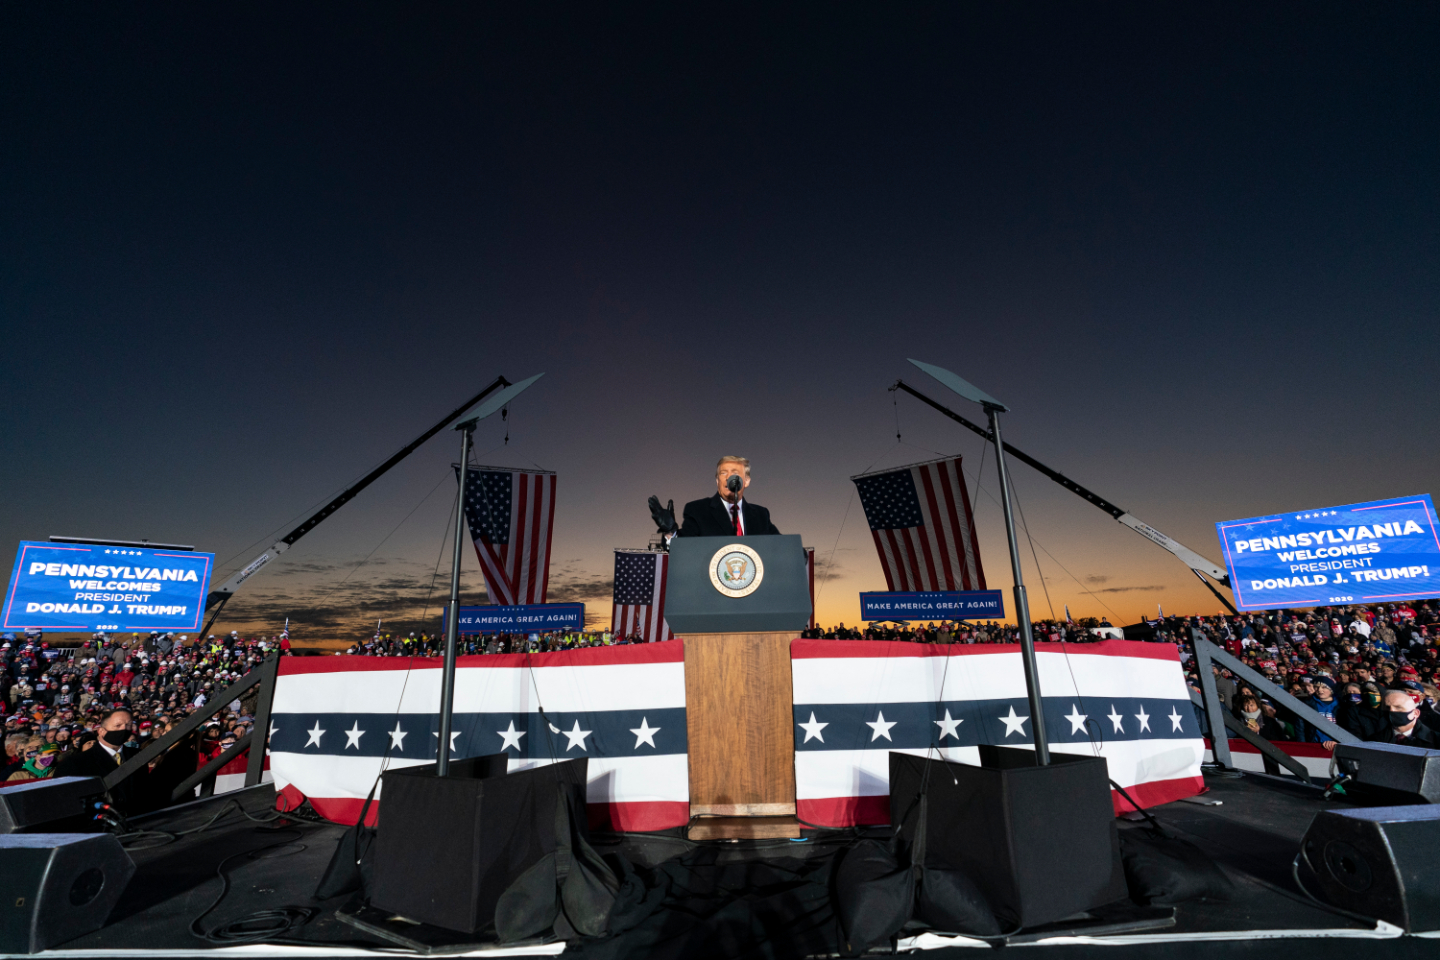 , Trump Has Now Abandoned Rallygoers in Freezing Cold, Scorching Heat, and Dead of Night, Saubio Making Wealth